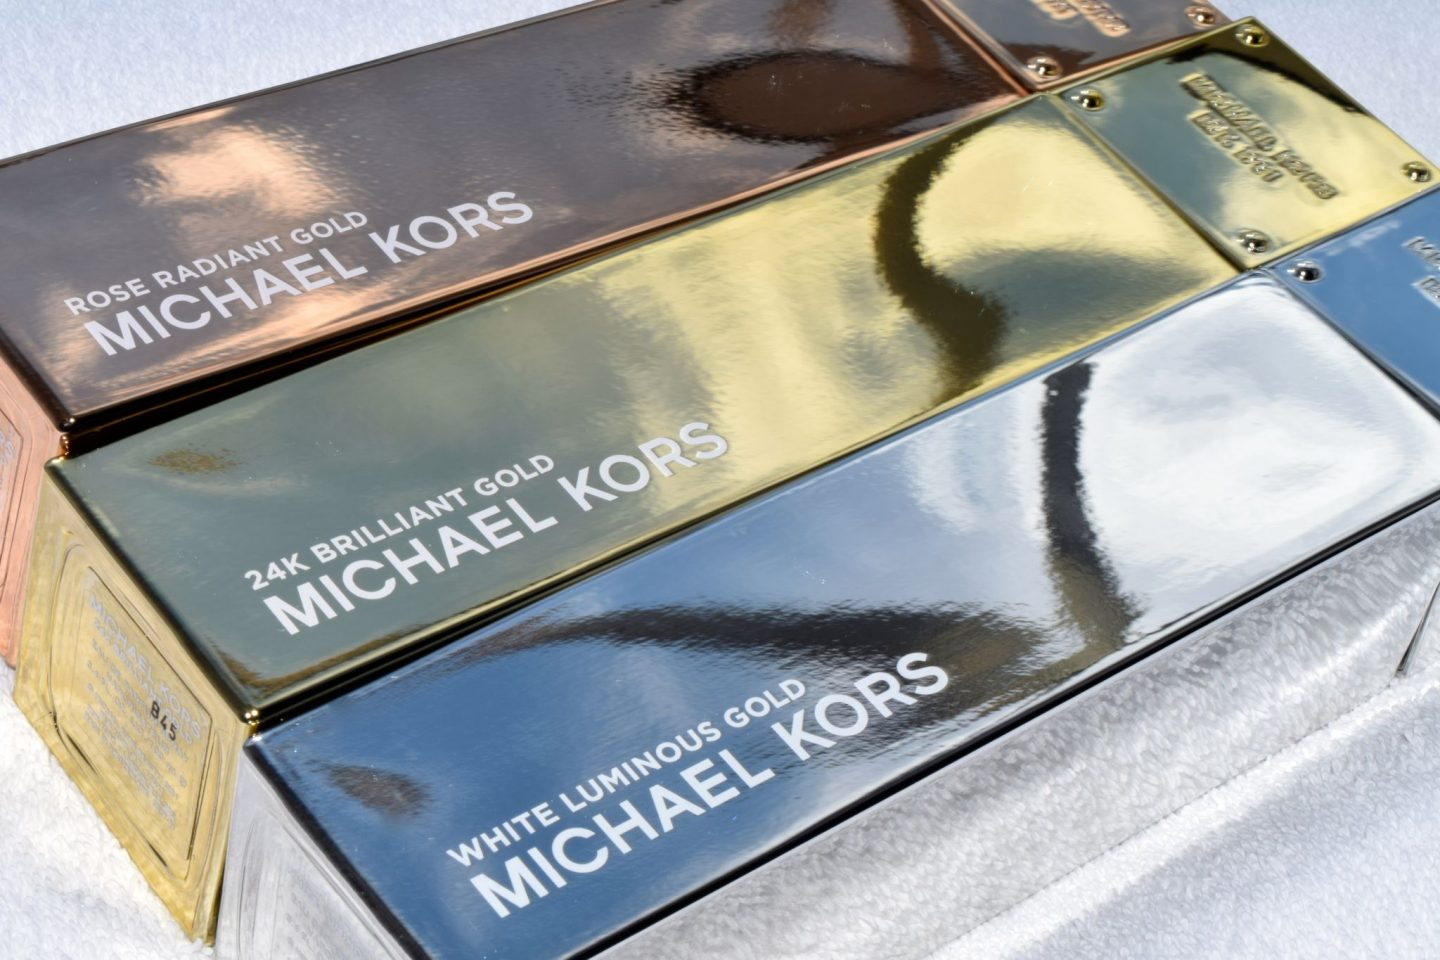 Michael Kors Gold Perfume Collection 2